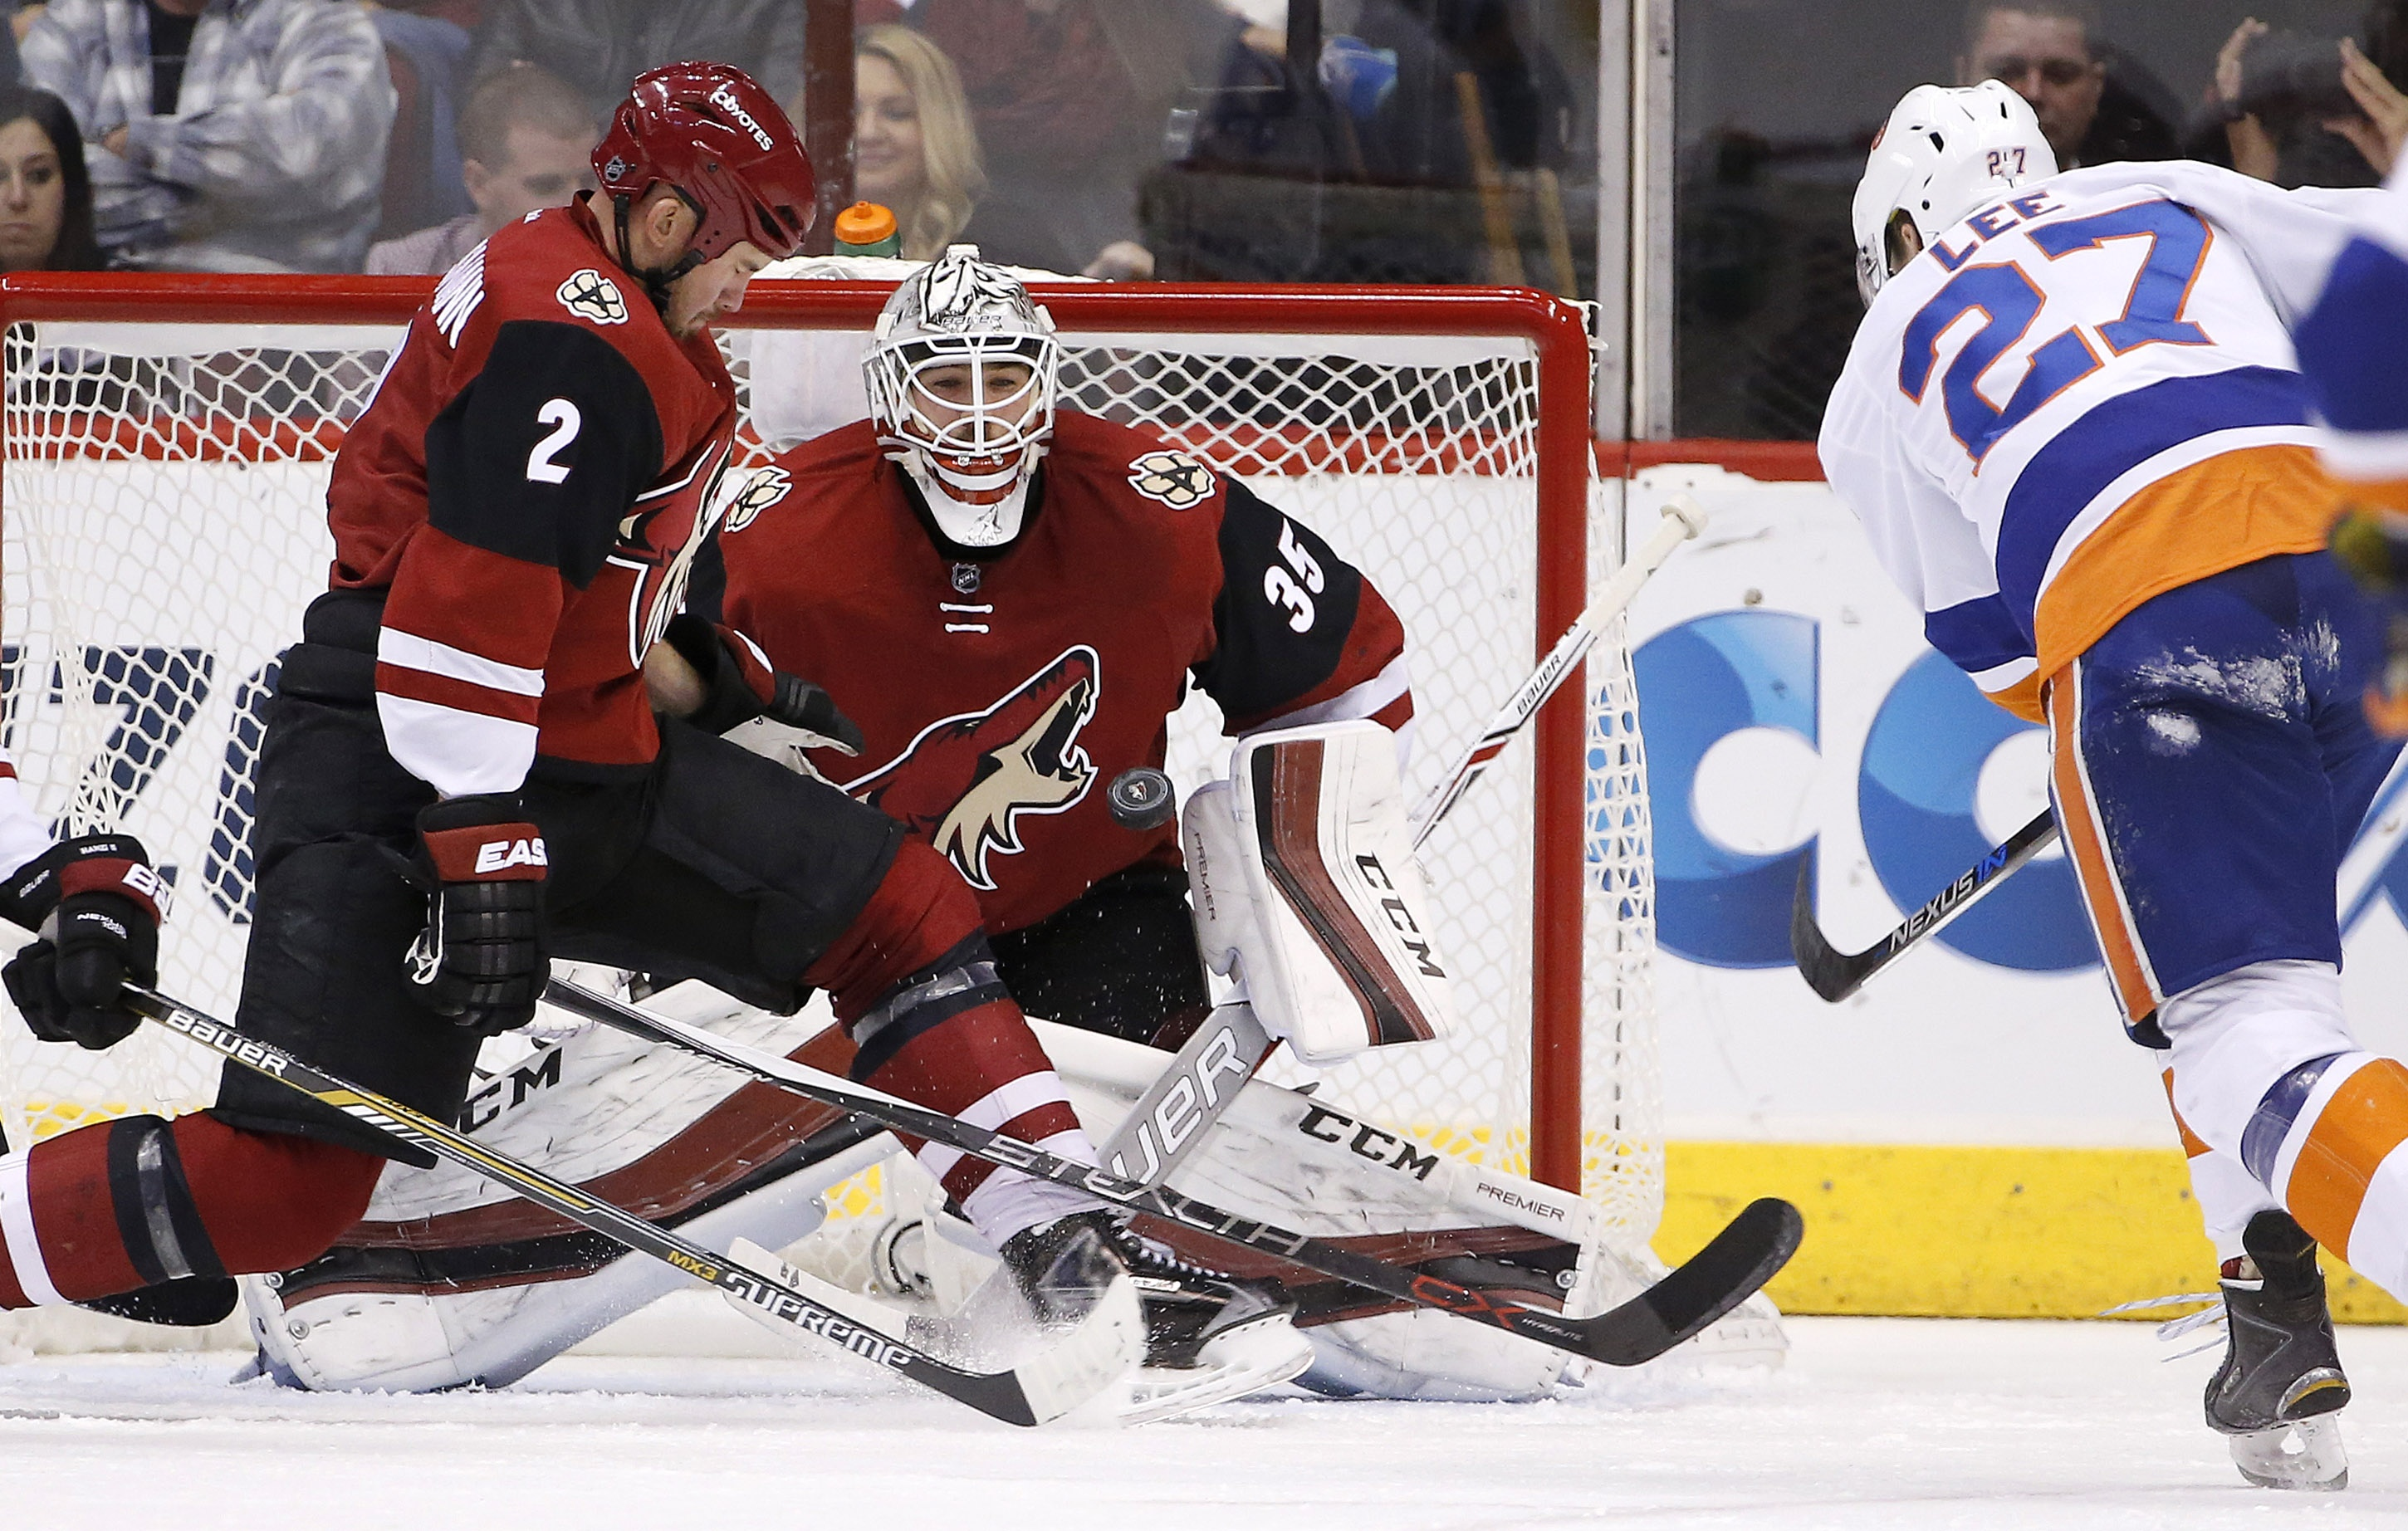 Arizona Coyotes' Louis Domingue (35) gets ready to make a save on a shot by New York Islanders' Anders Lee (27) as Coyotes' Nicklas Grossmann (2), of Sweden, slides over in an attempt to deflect the puck during the second period of an NHL hockey game Satu